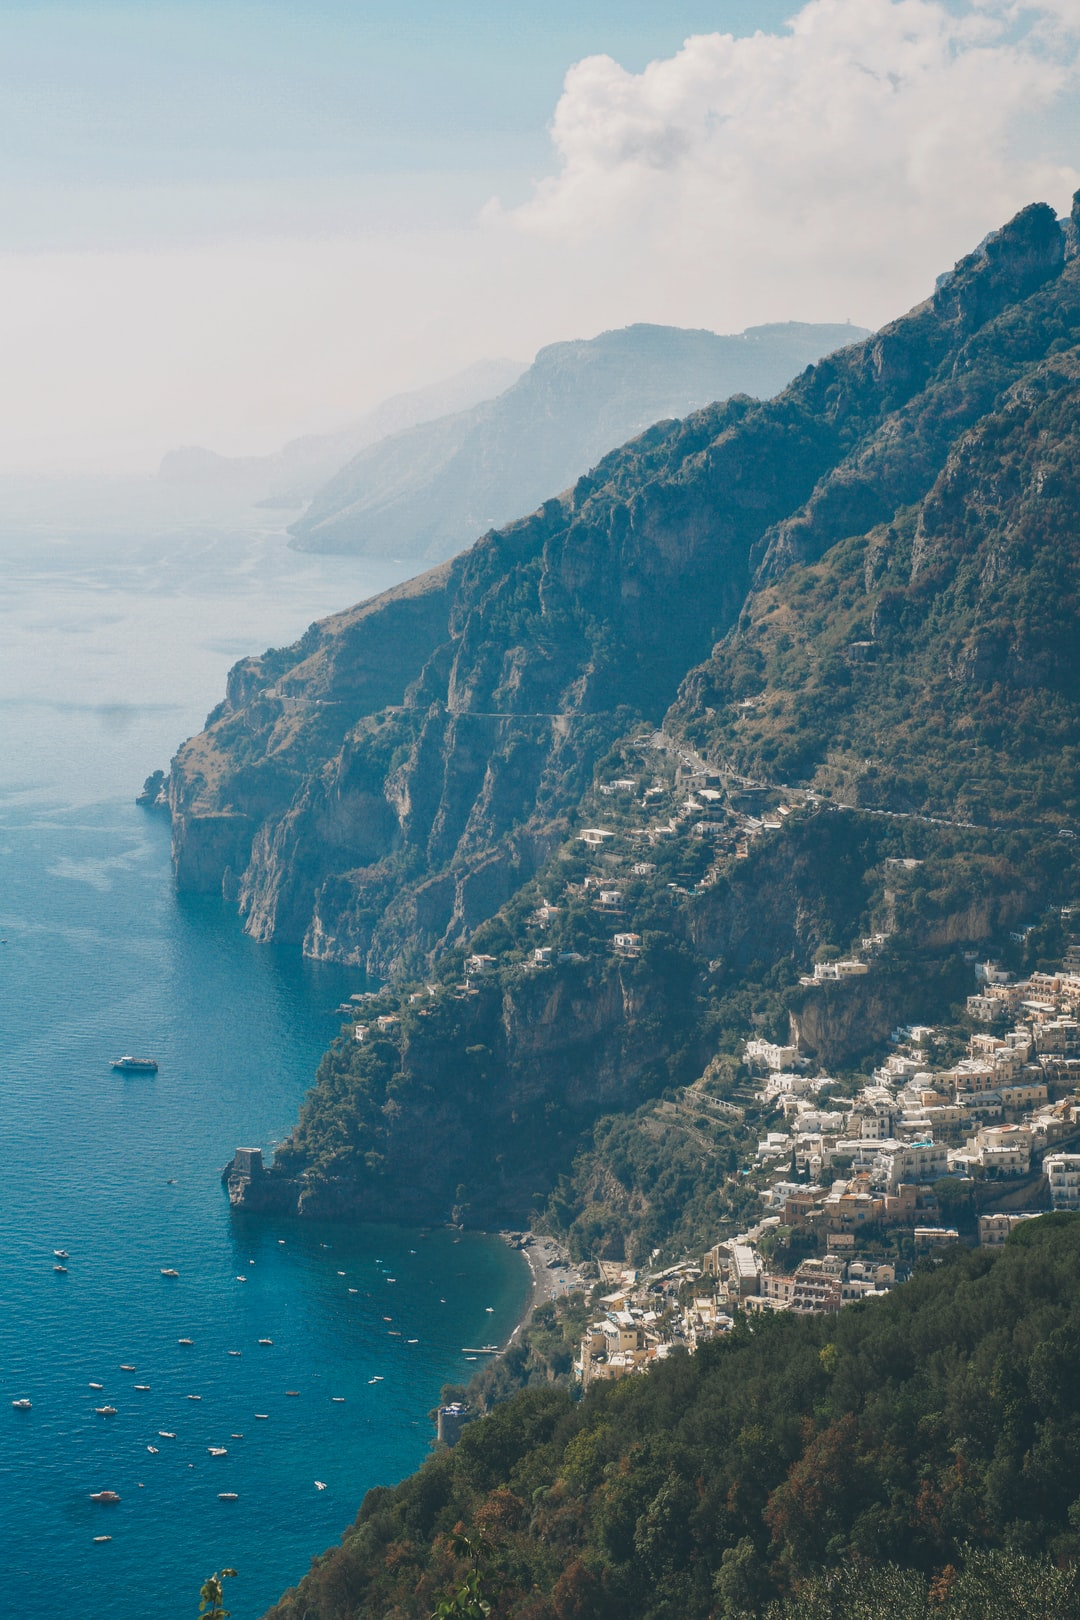 buildings and houses on top of mountains surrounded by body of water in Positano Italy